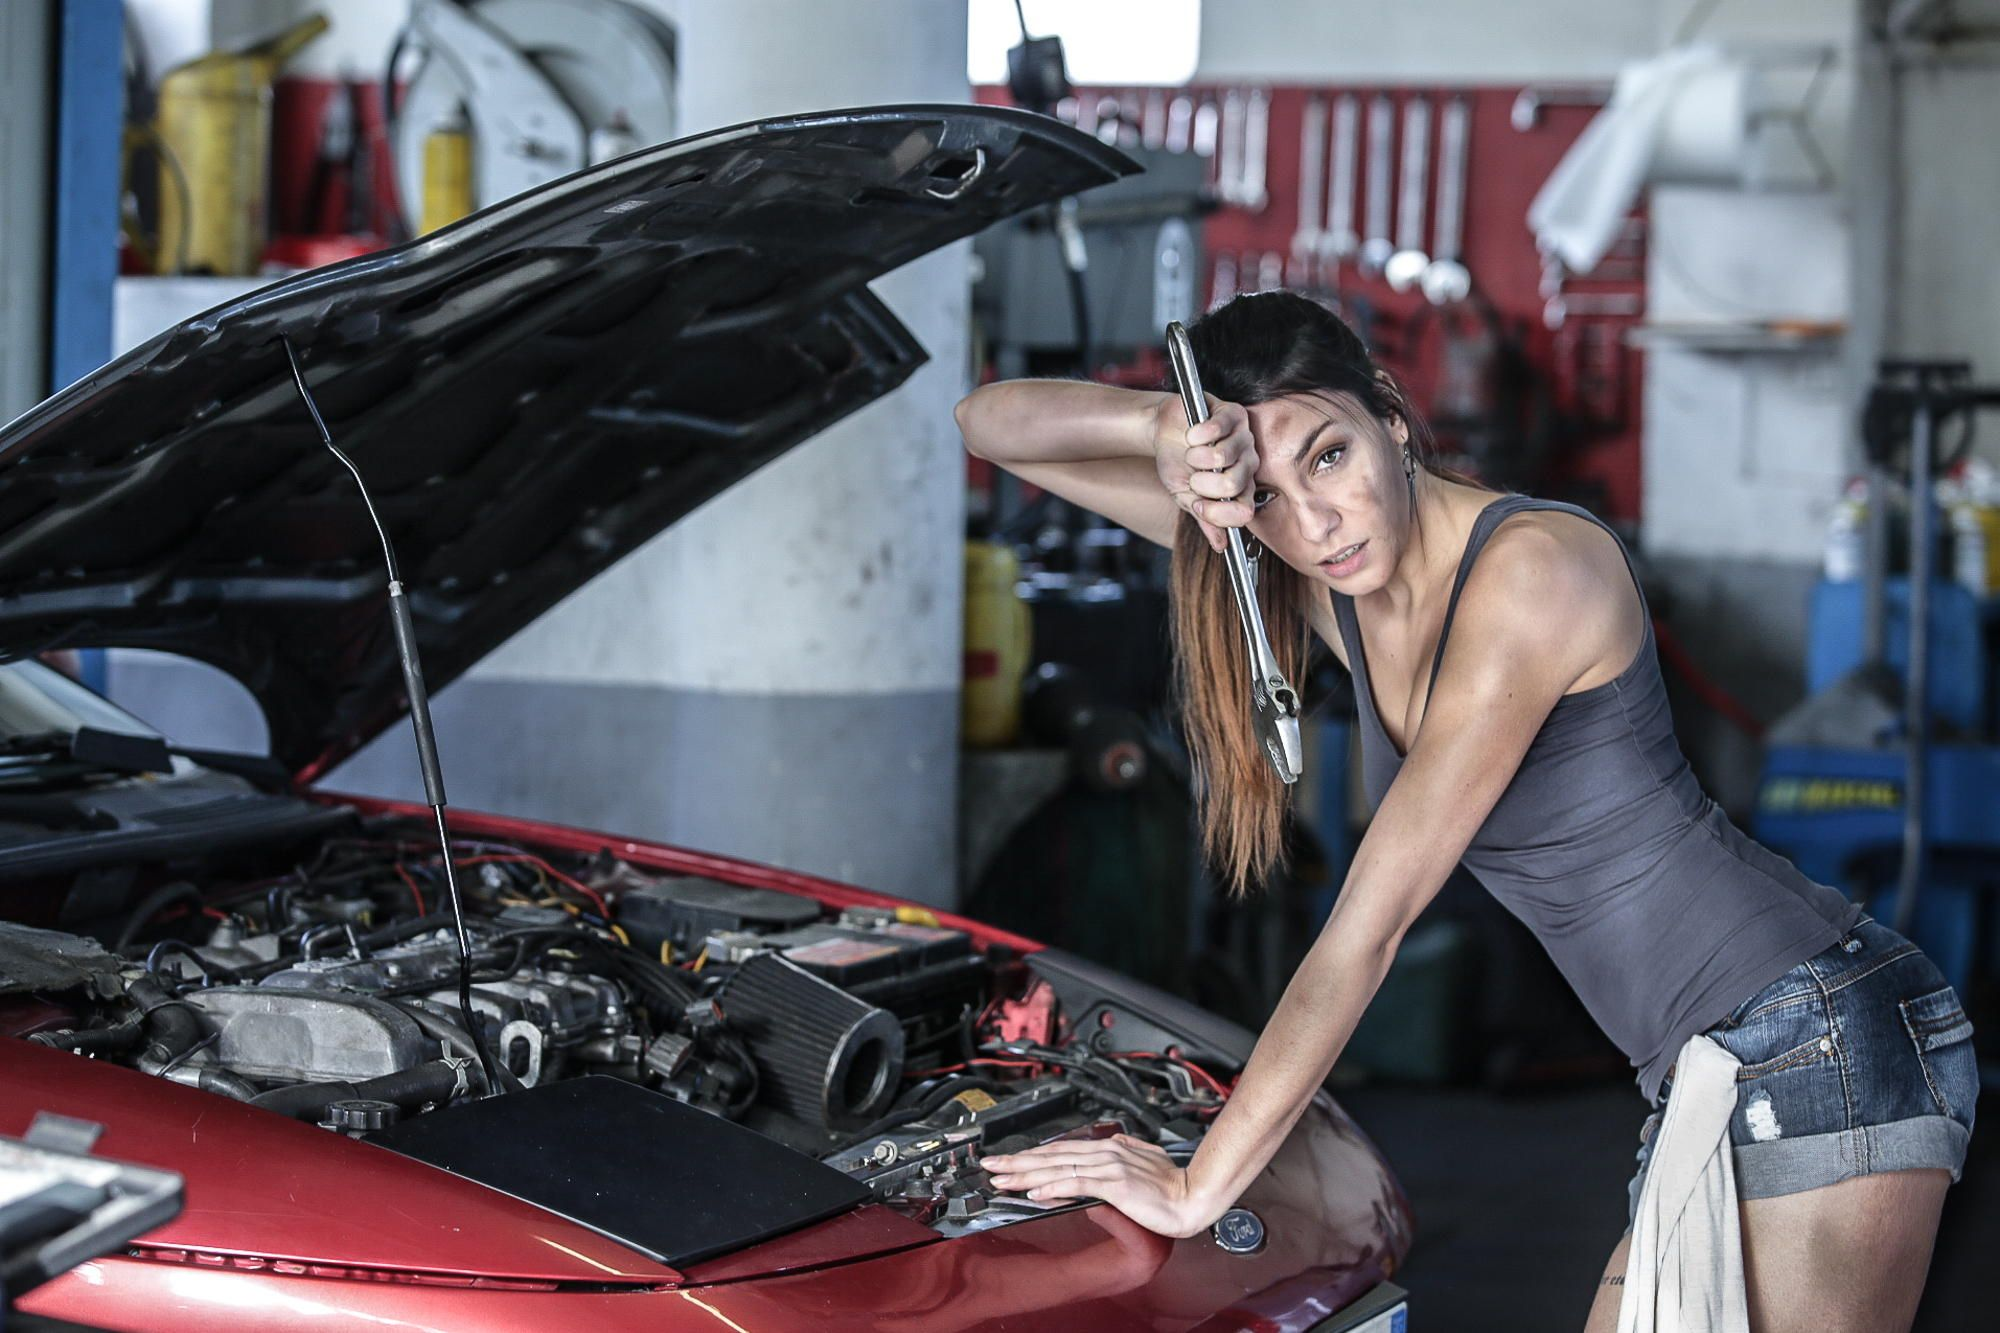 Photograph Sexy Garage Girl Repair Ford Car By Fabrice